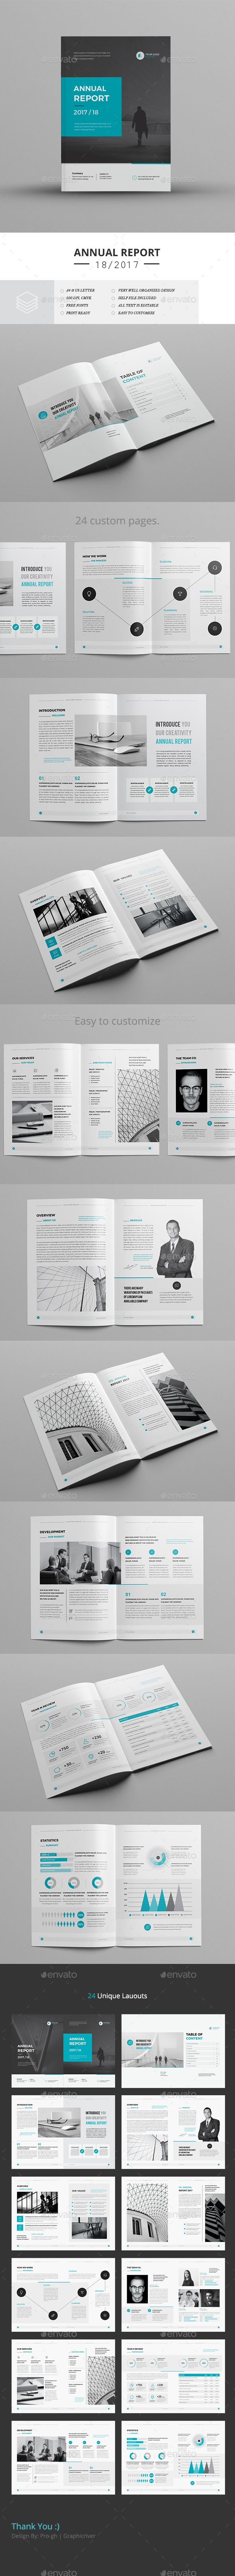 Annual Report | Annual reports, Brochures and Corporate brochure